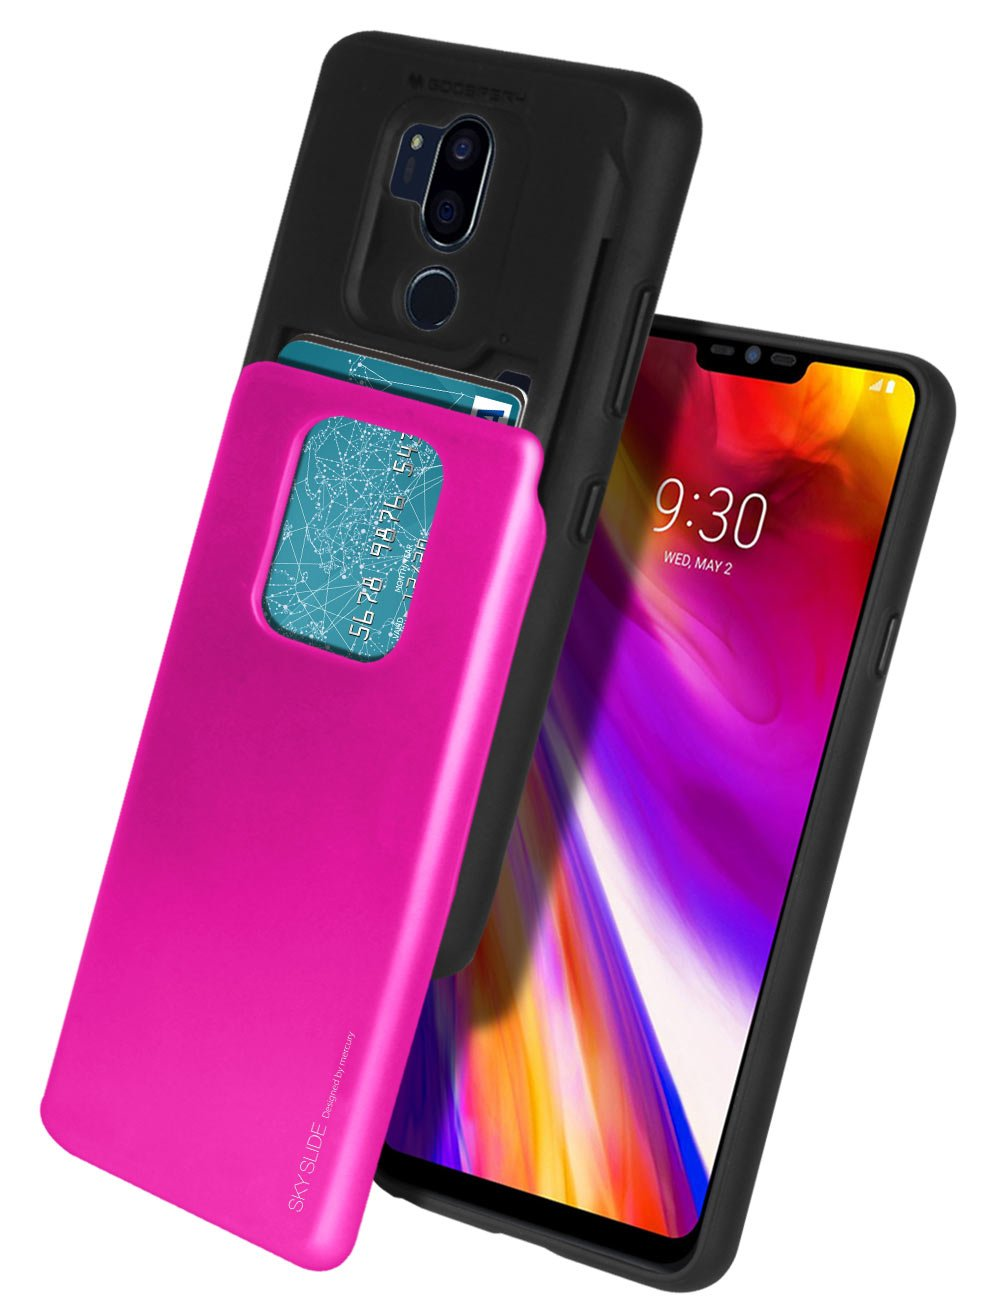 Lg G7 Thinq Case Mercury Sliding Card Goospery Iphone 7 Plus Sky Slide Bumper Lime Holder Protective Dual Layer Tpu Pc Cover With Slot Wallet For